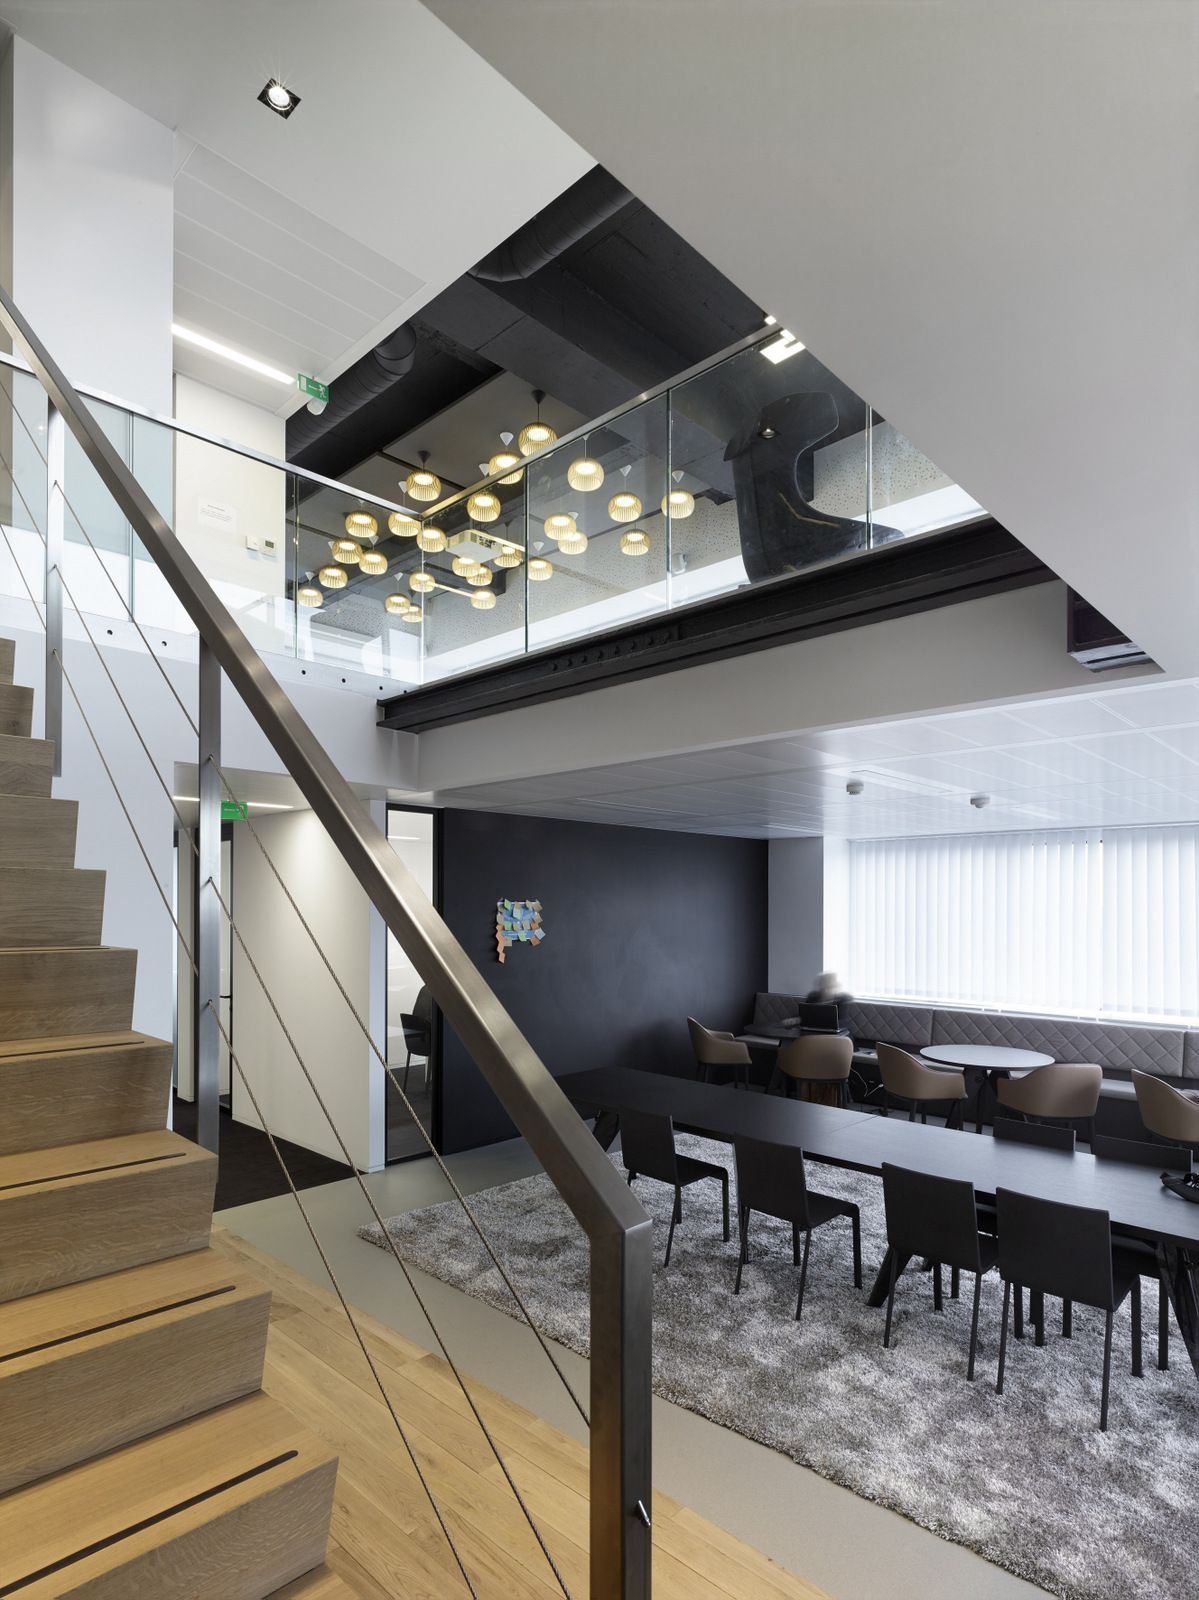 Consulting firm office design stair breakout office for Interior design consulting firms